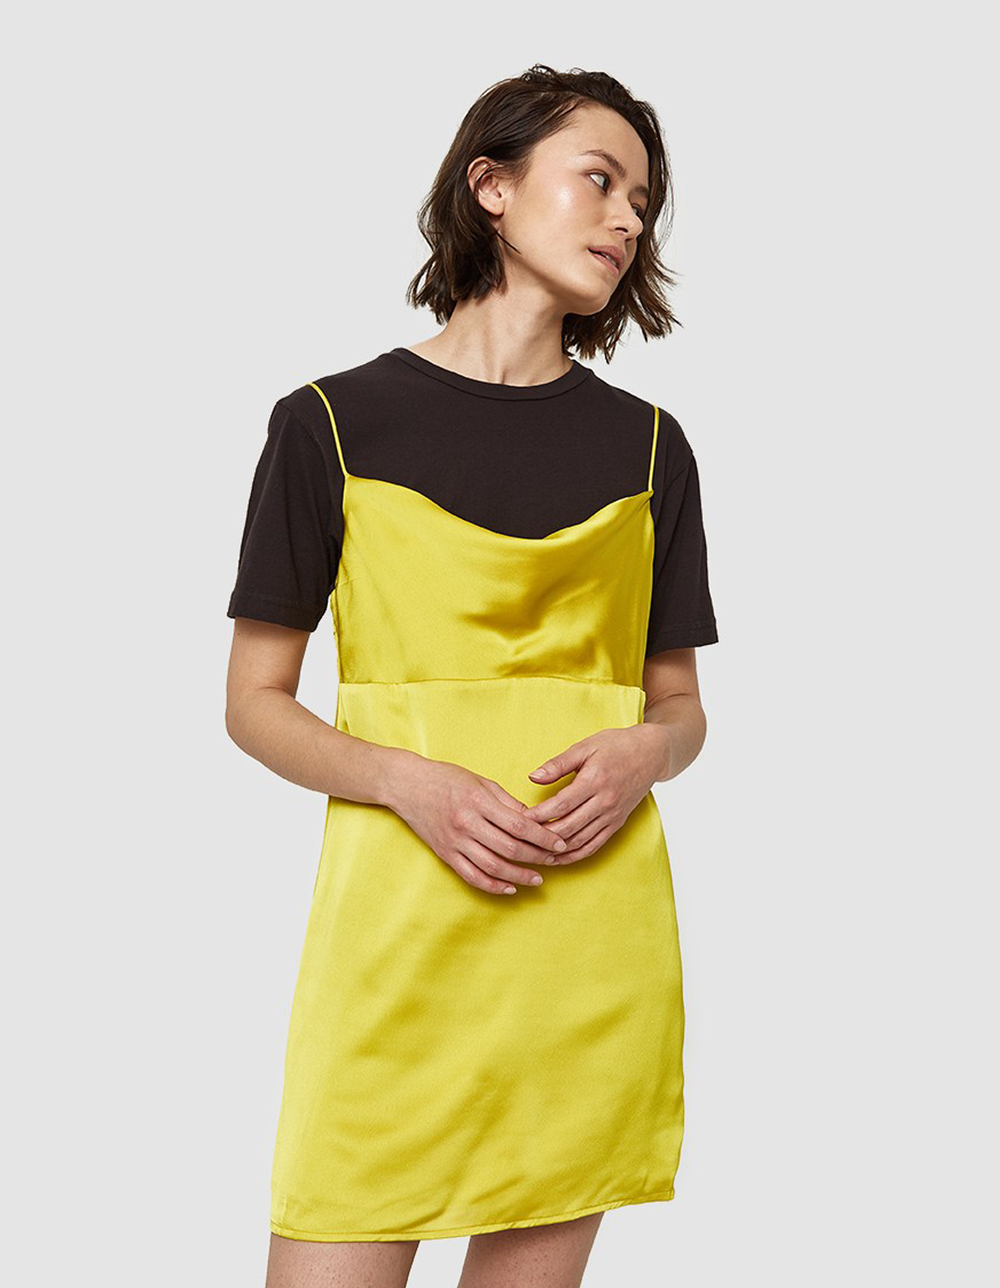 yellow spaghetti strap dress | @themissprints